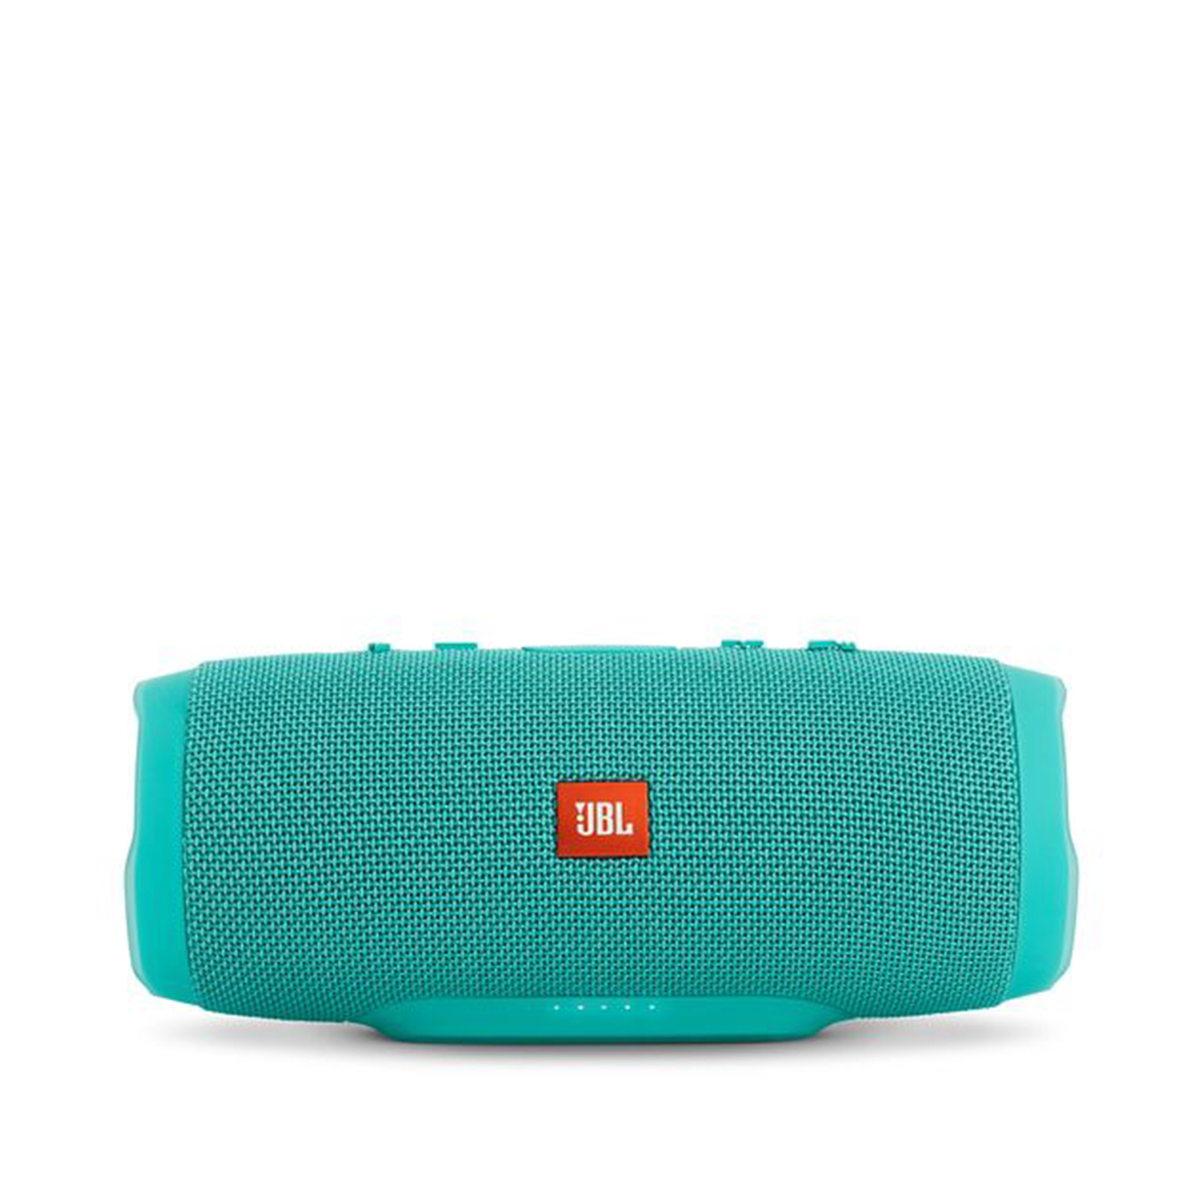 JBL - Charge 4 Portable Bluetooth Speaker - Green